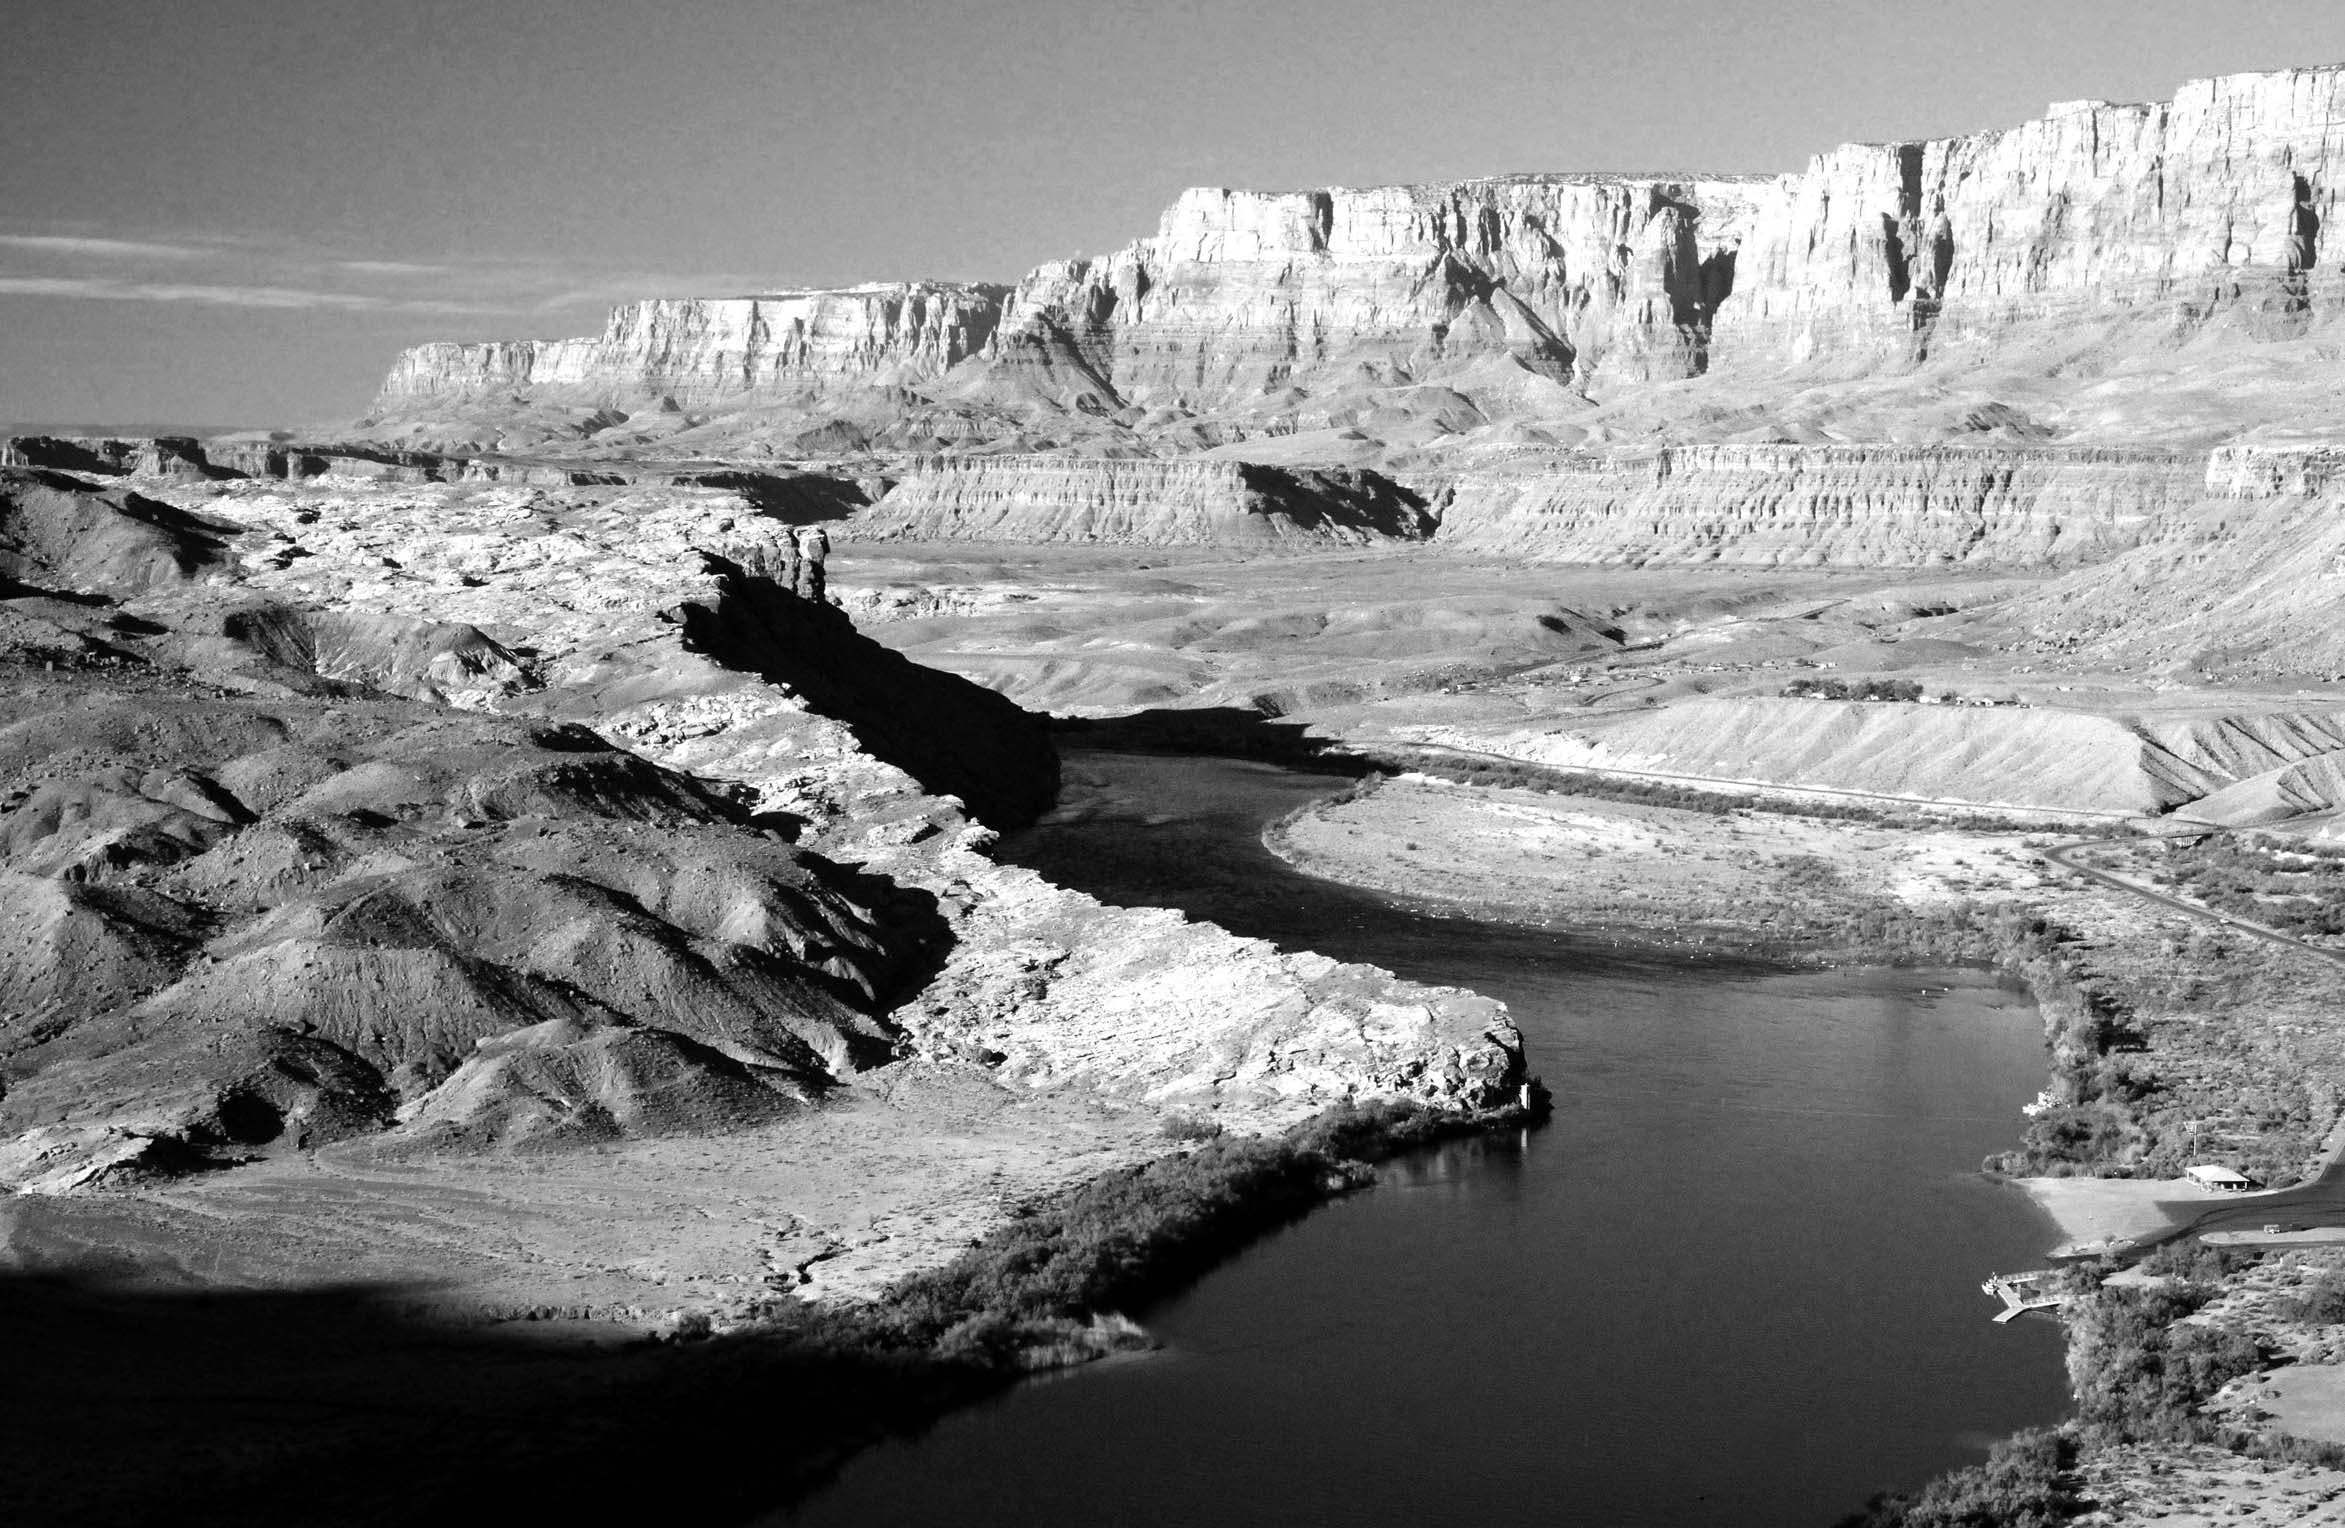 Black and White Photo of Mountains and River